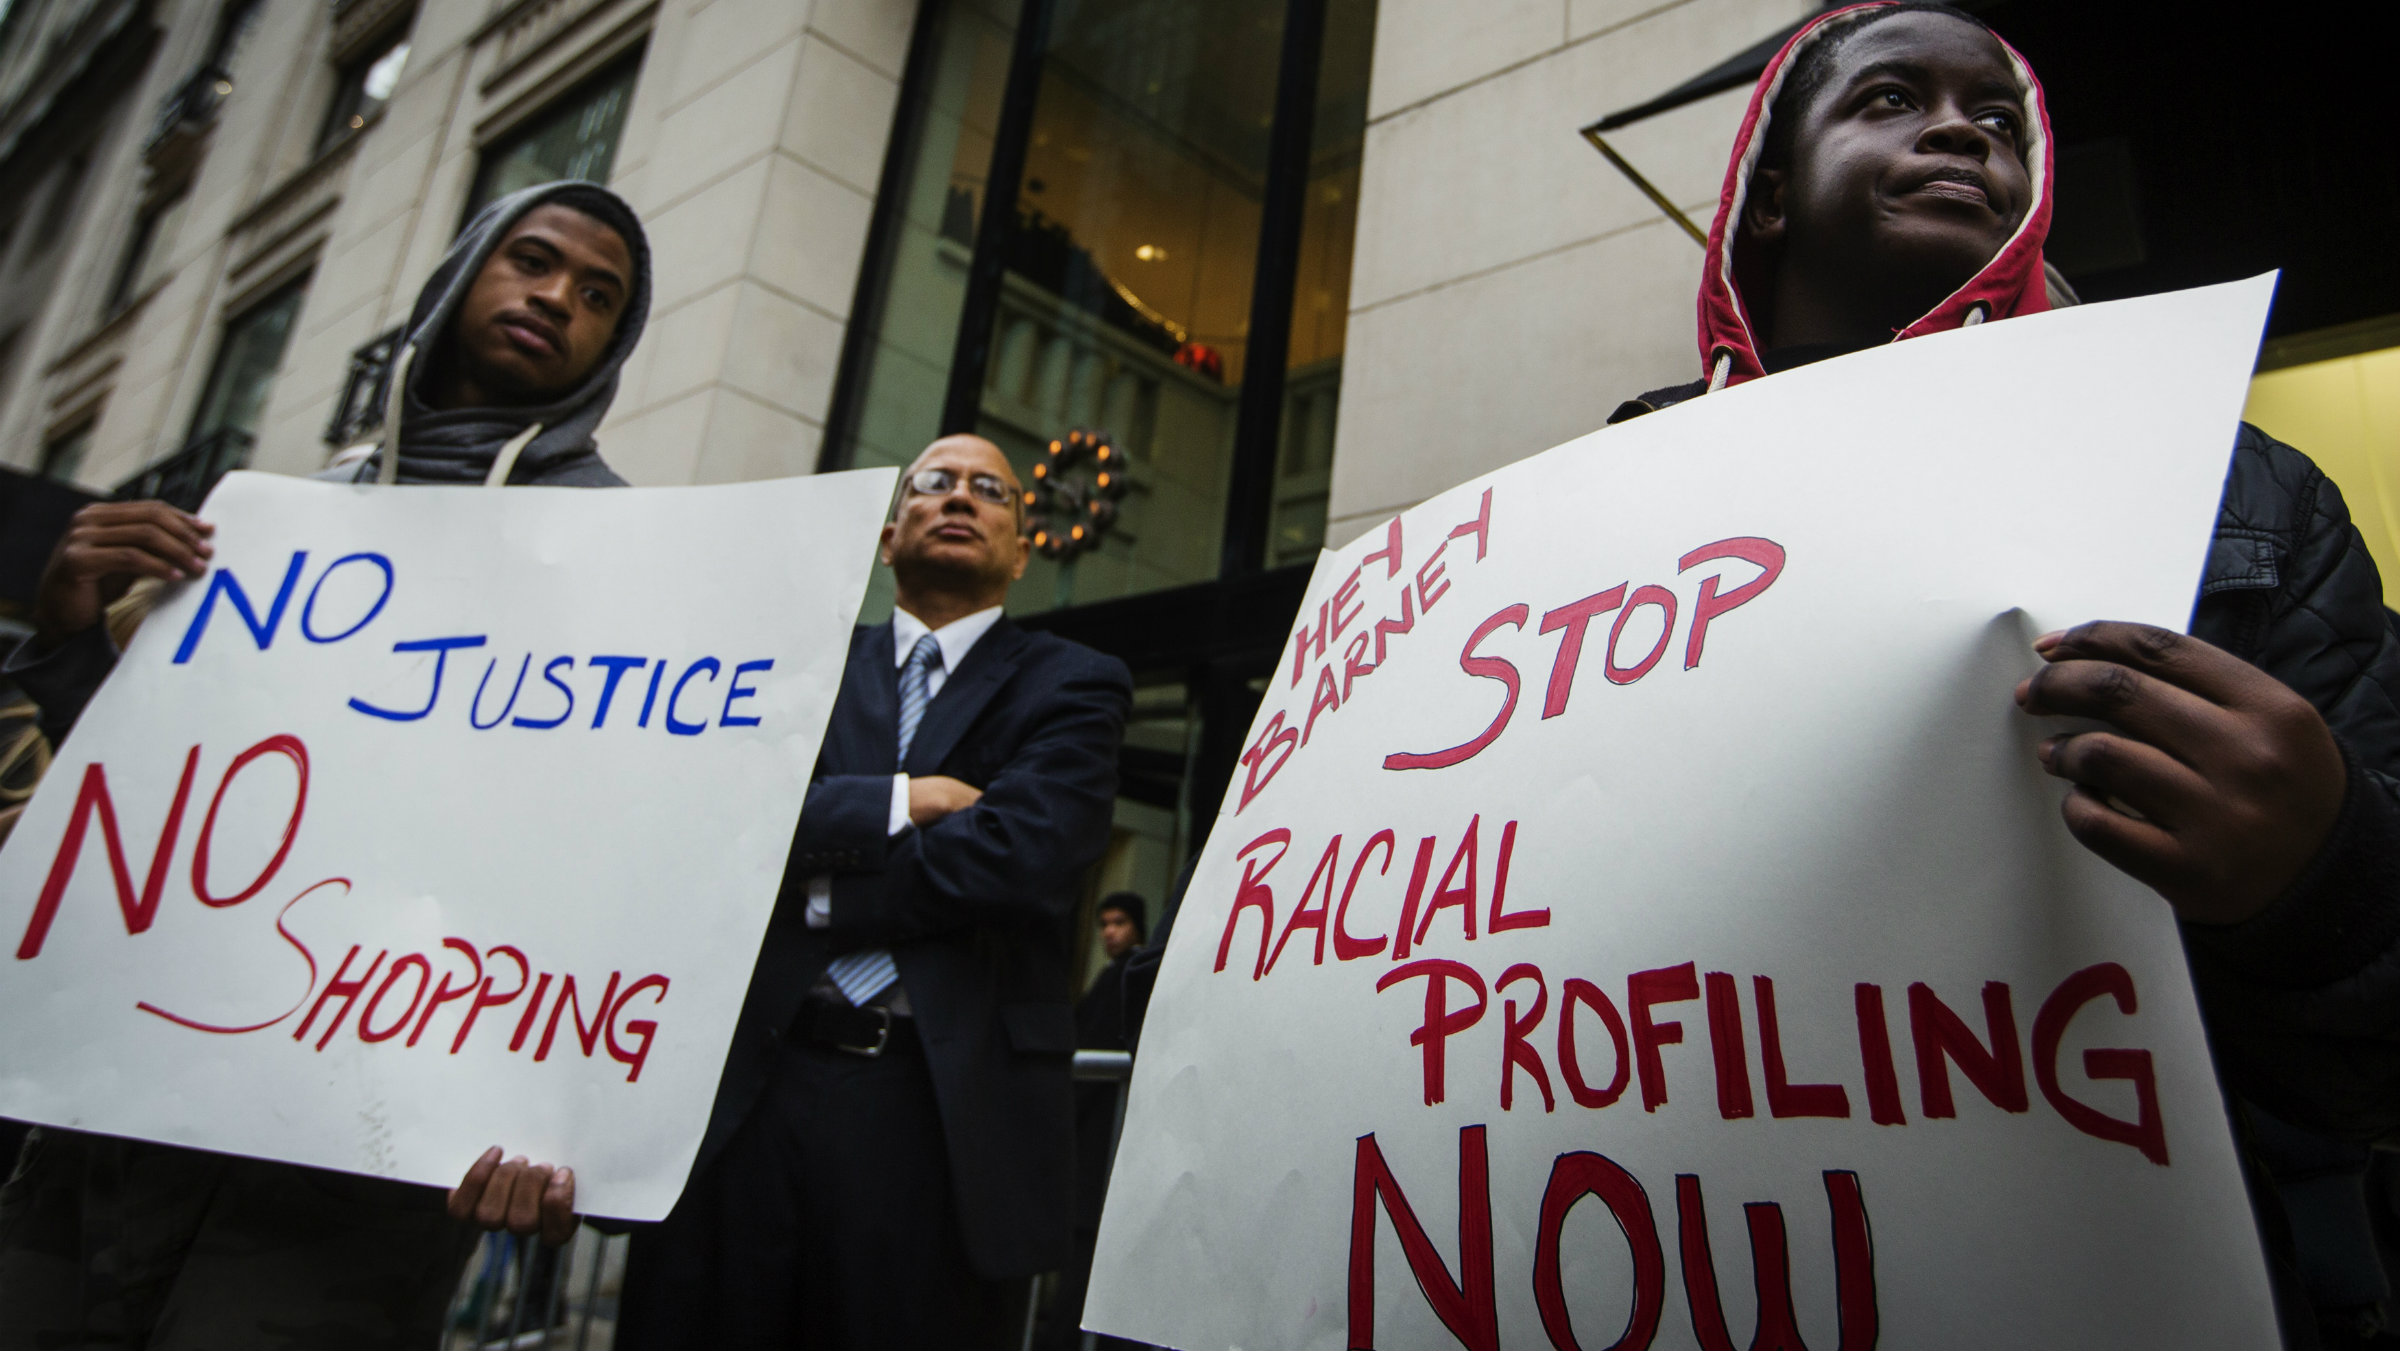 Demonstrators stand in front of a Barneys luxury department store of with signs decrying allegations that Barney's and Macy's stores have unfair security policies aimed at minorities in New York October 30, 2013. Picketers headed for the Manhattan storefront of Barneys New York Inc on Wednesday to express outrage over black customers' complaints that they were stopped by police after making luxury purchases. REUTERS/Lucas Jackson (UNITED STATES - Tags: CIVIL UNREST BUSINESS)